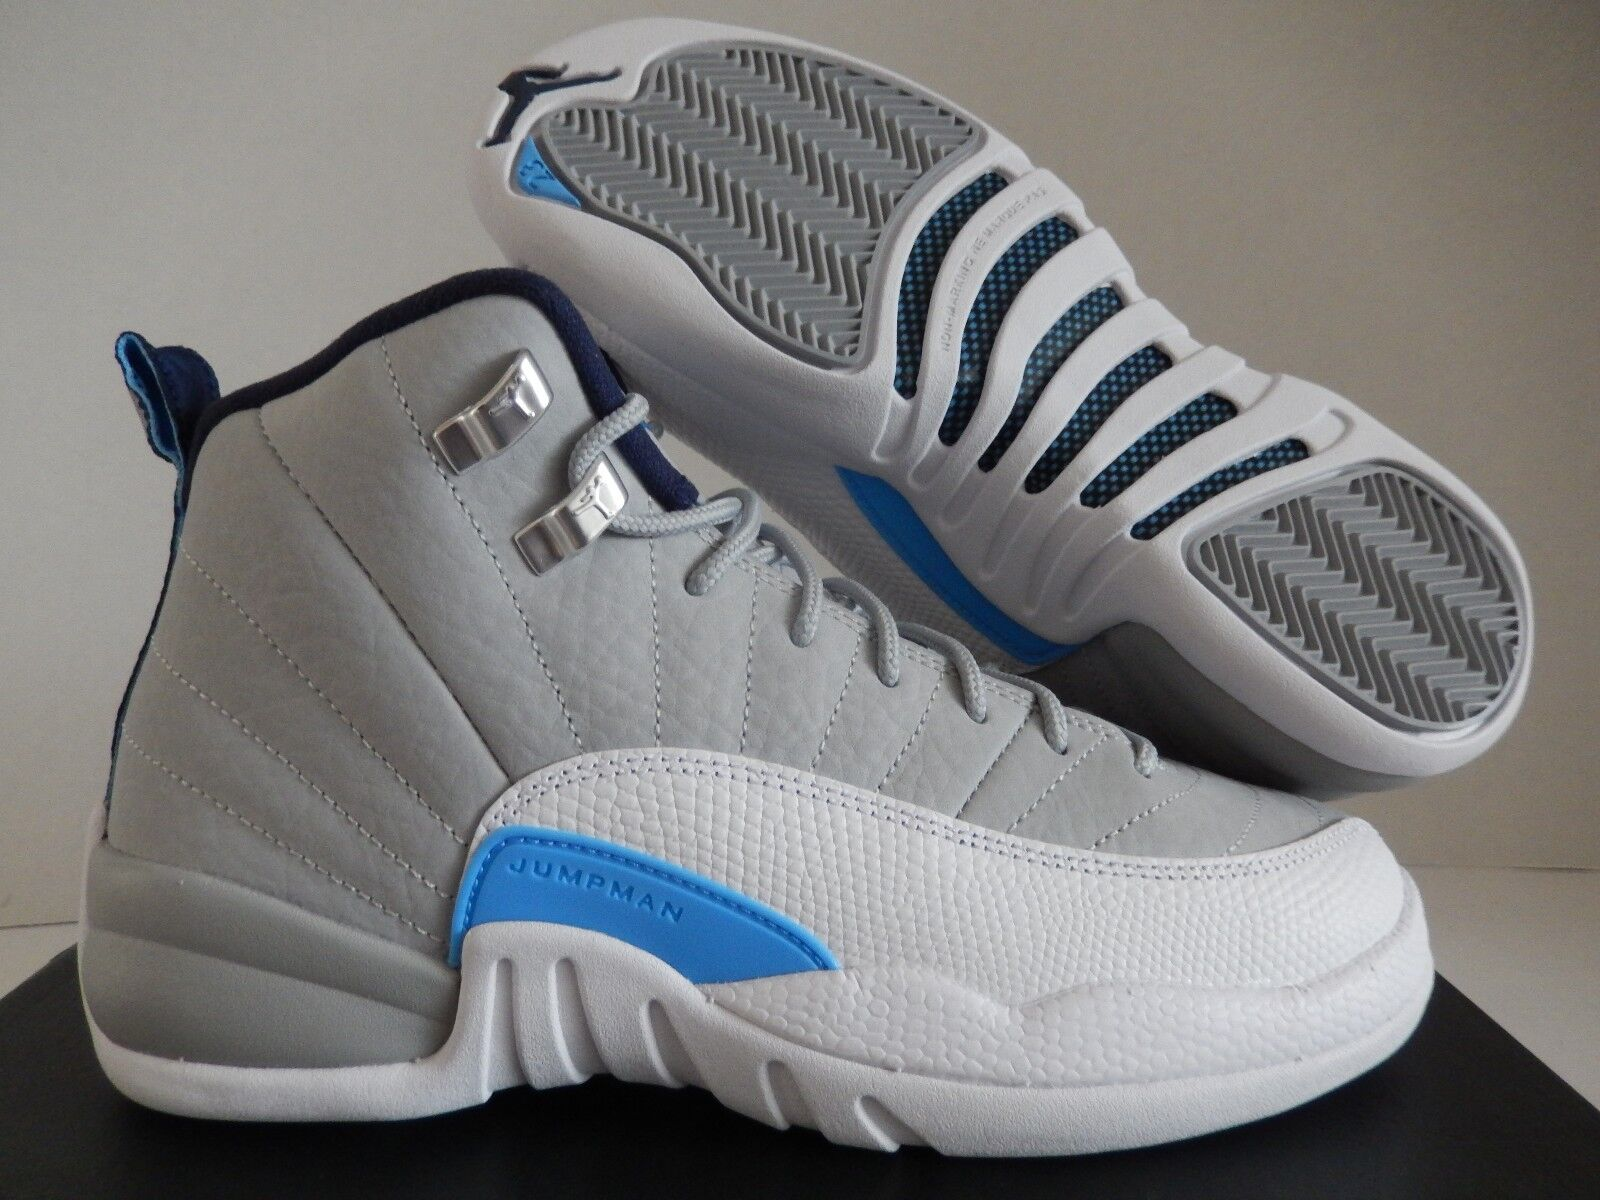 NIKE AIR JORDAN 12 RETRO (BG) WOLF GREY-BLUE SZ 6Y -Donna SZ 7.5 [153265-007]